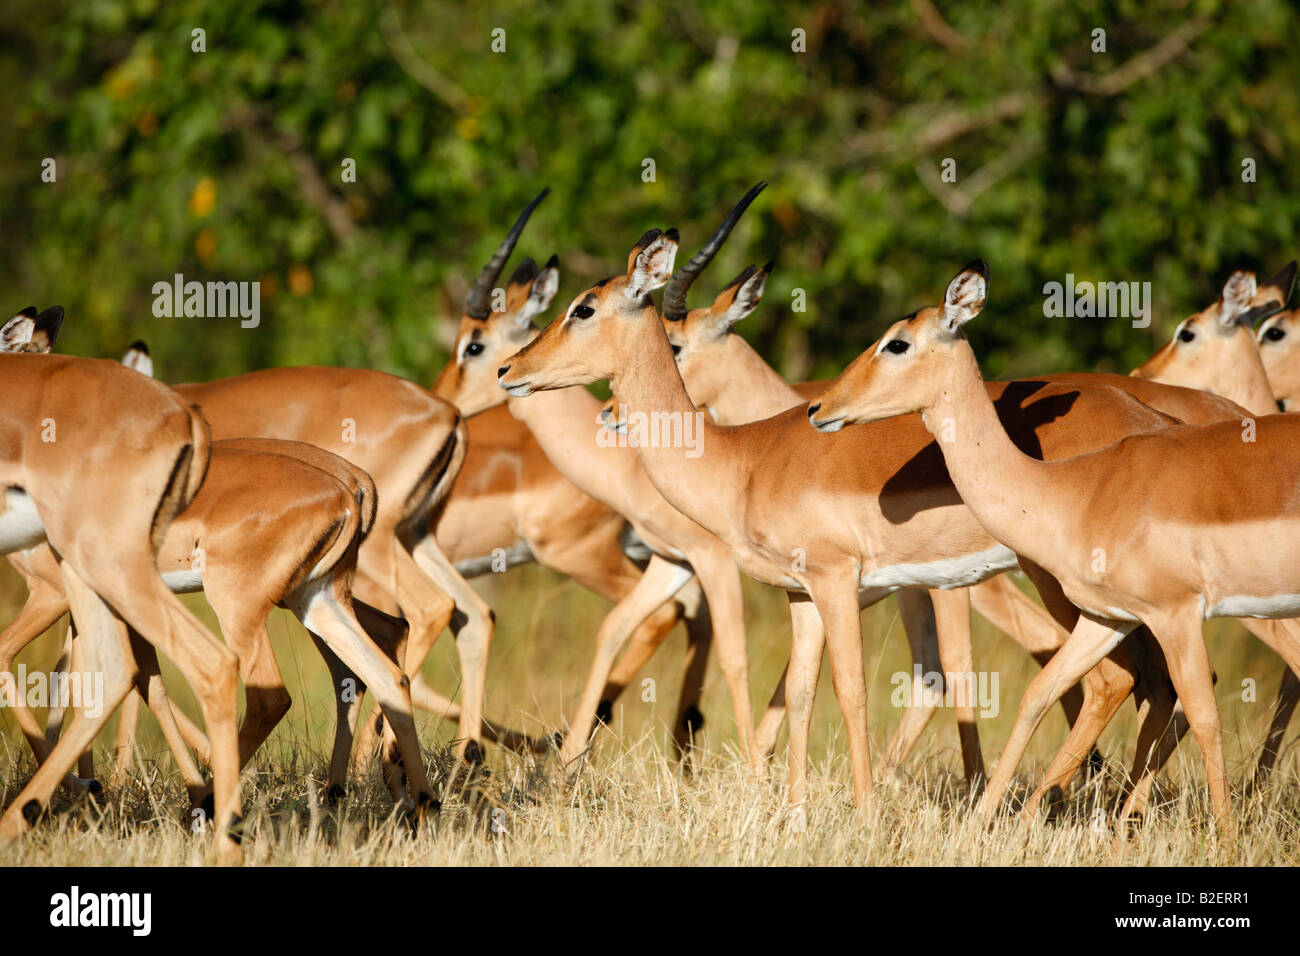 Tight shot of an impala herd with sub-adult rams and ewes walking huddled close together - Stock Image